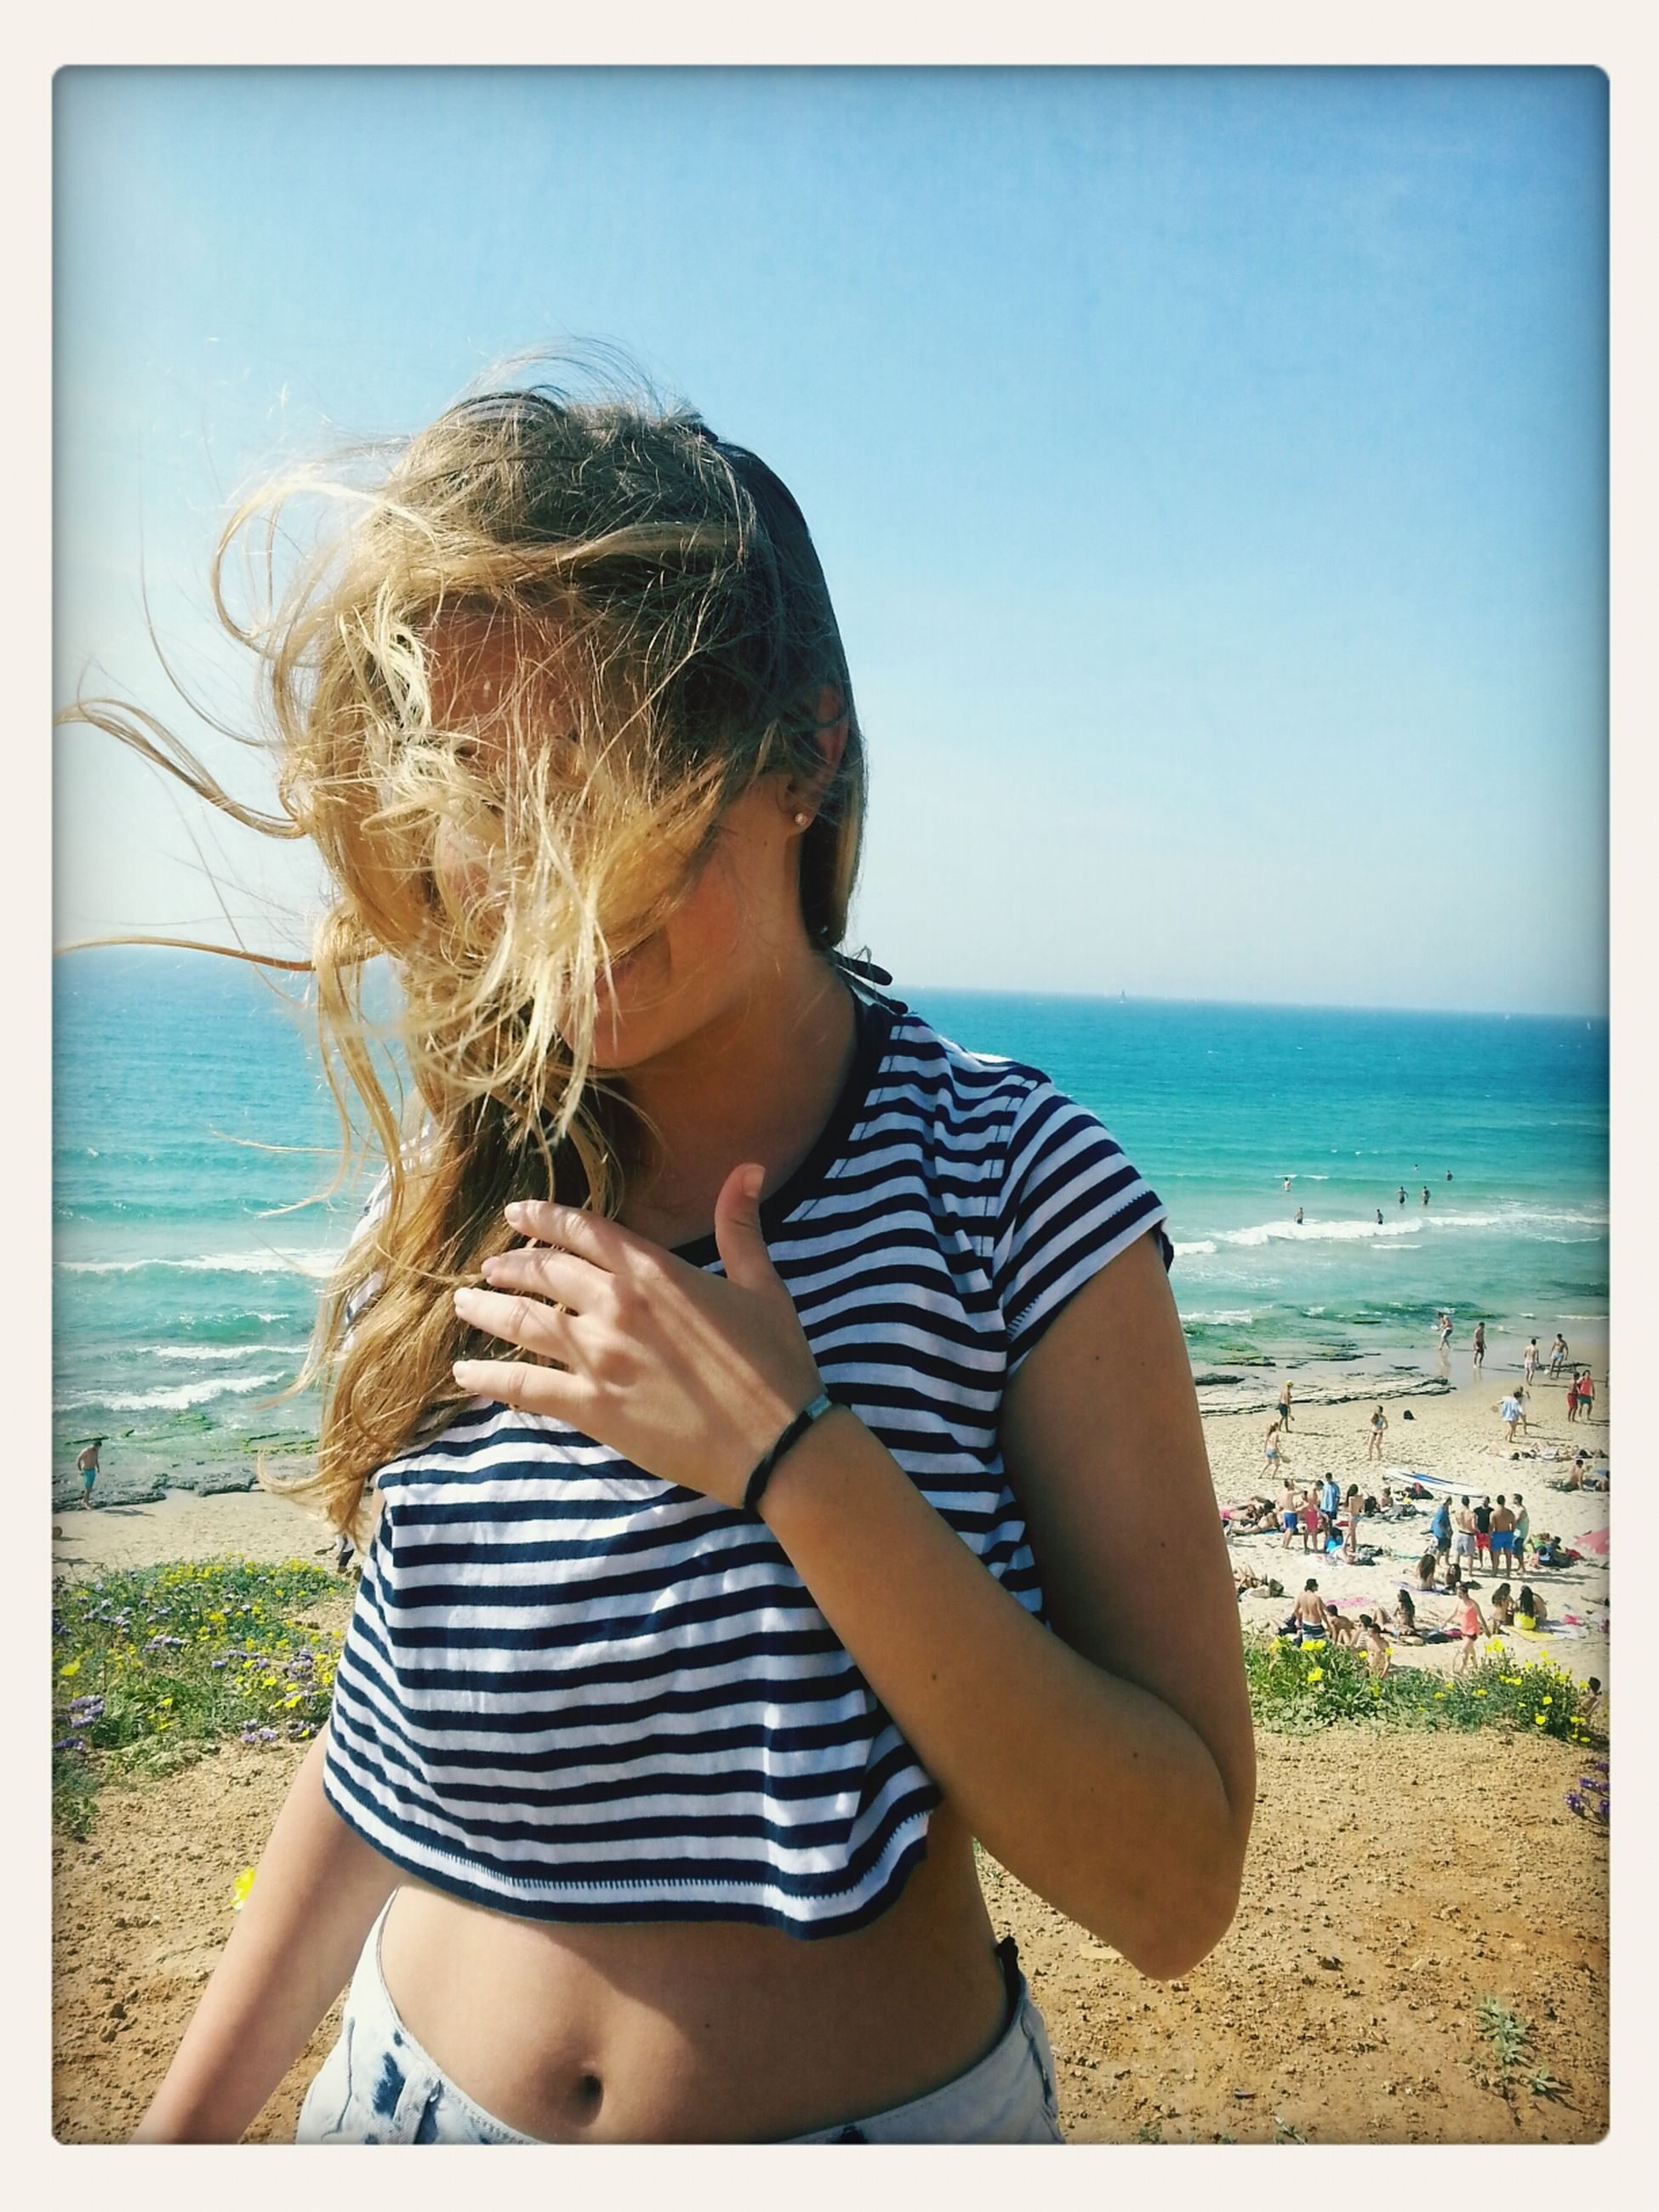 sea, beach, horizon over water, water, leisure activity, lifestyles, person, shore, clear sky, sand, young women, vacations, casual clothing, sunlight, sky, young adult, long hair, childhood